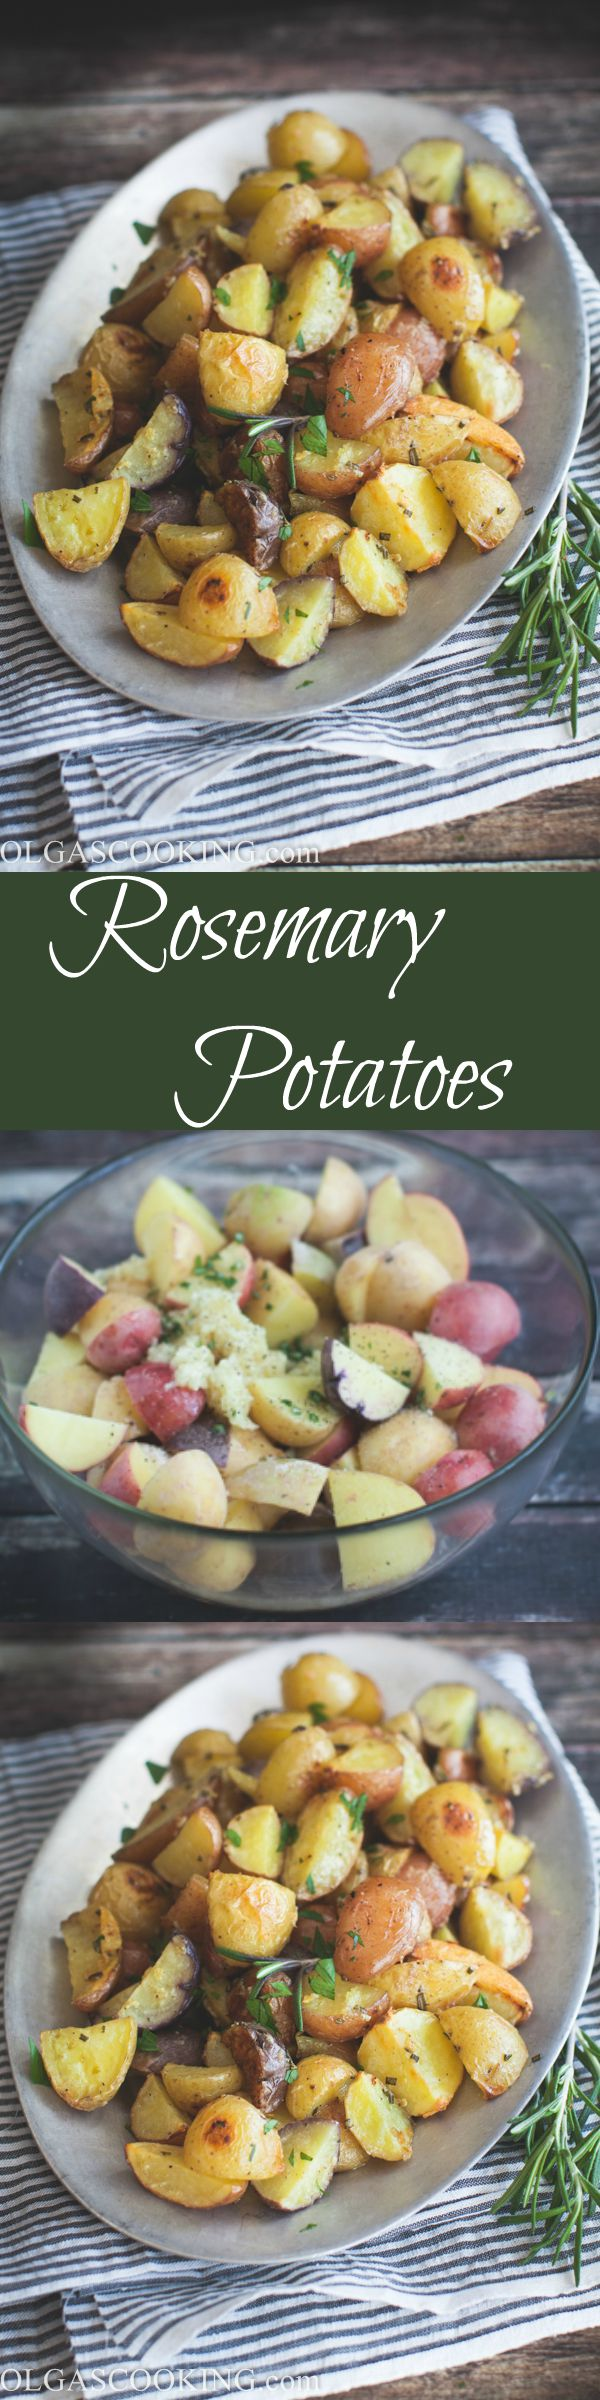 Rosemary Potatoes! Quick and easy to make and are full of flavor!